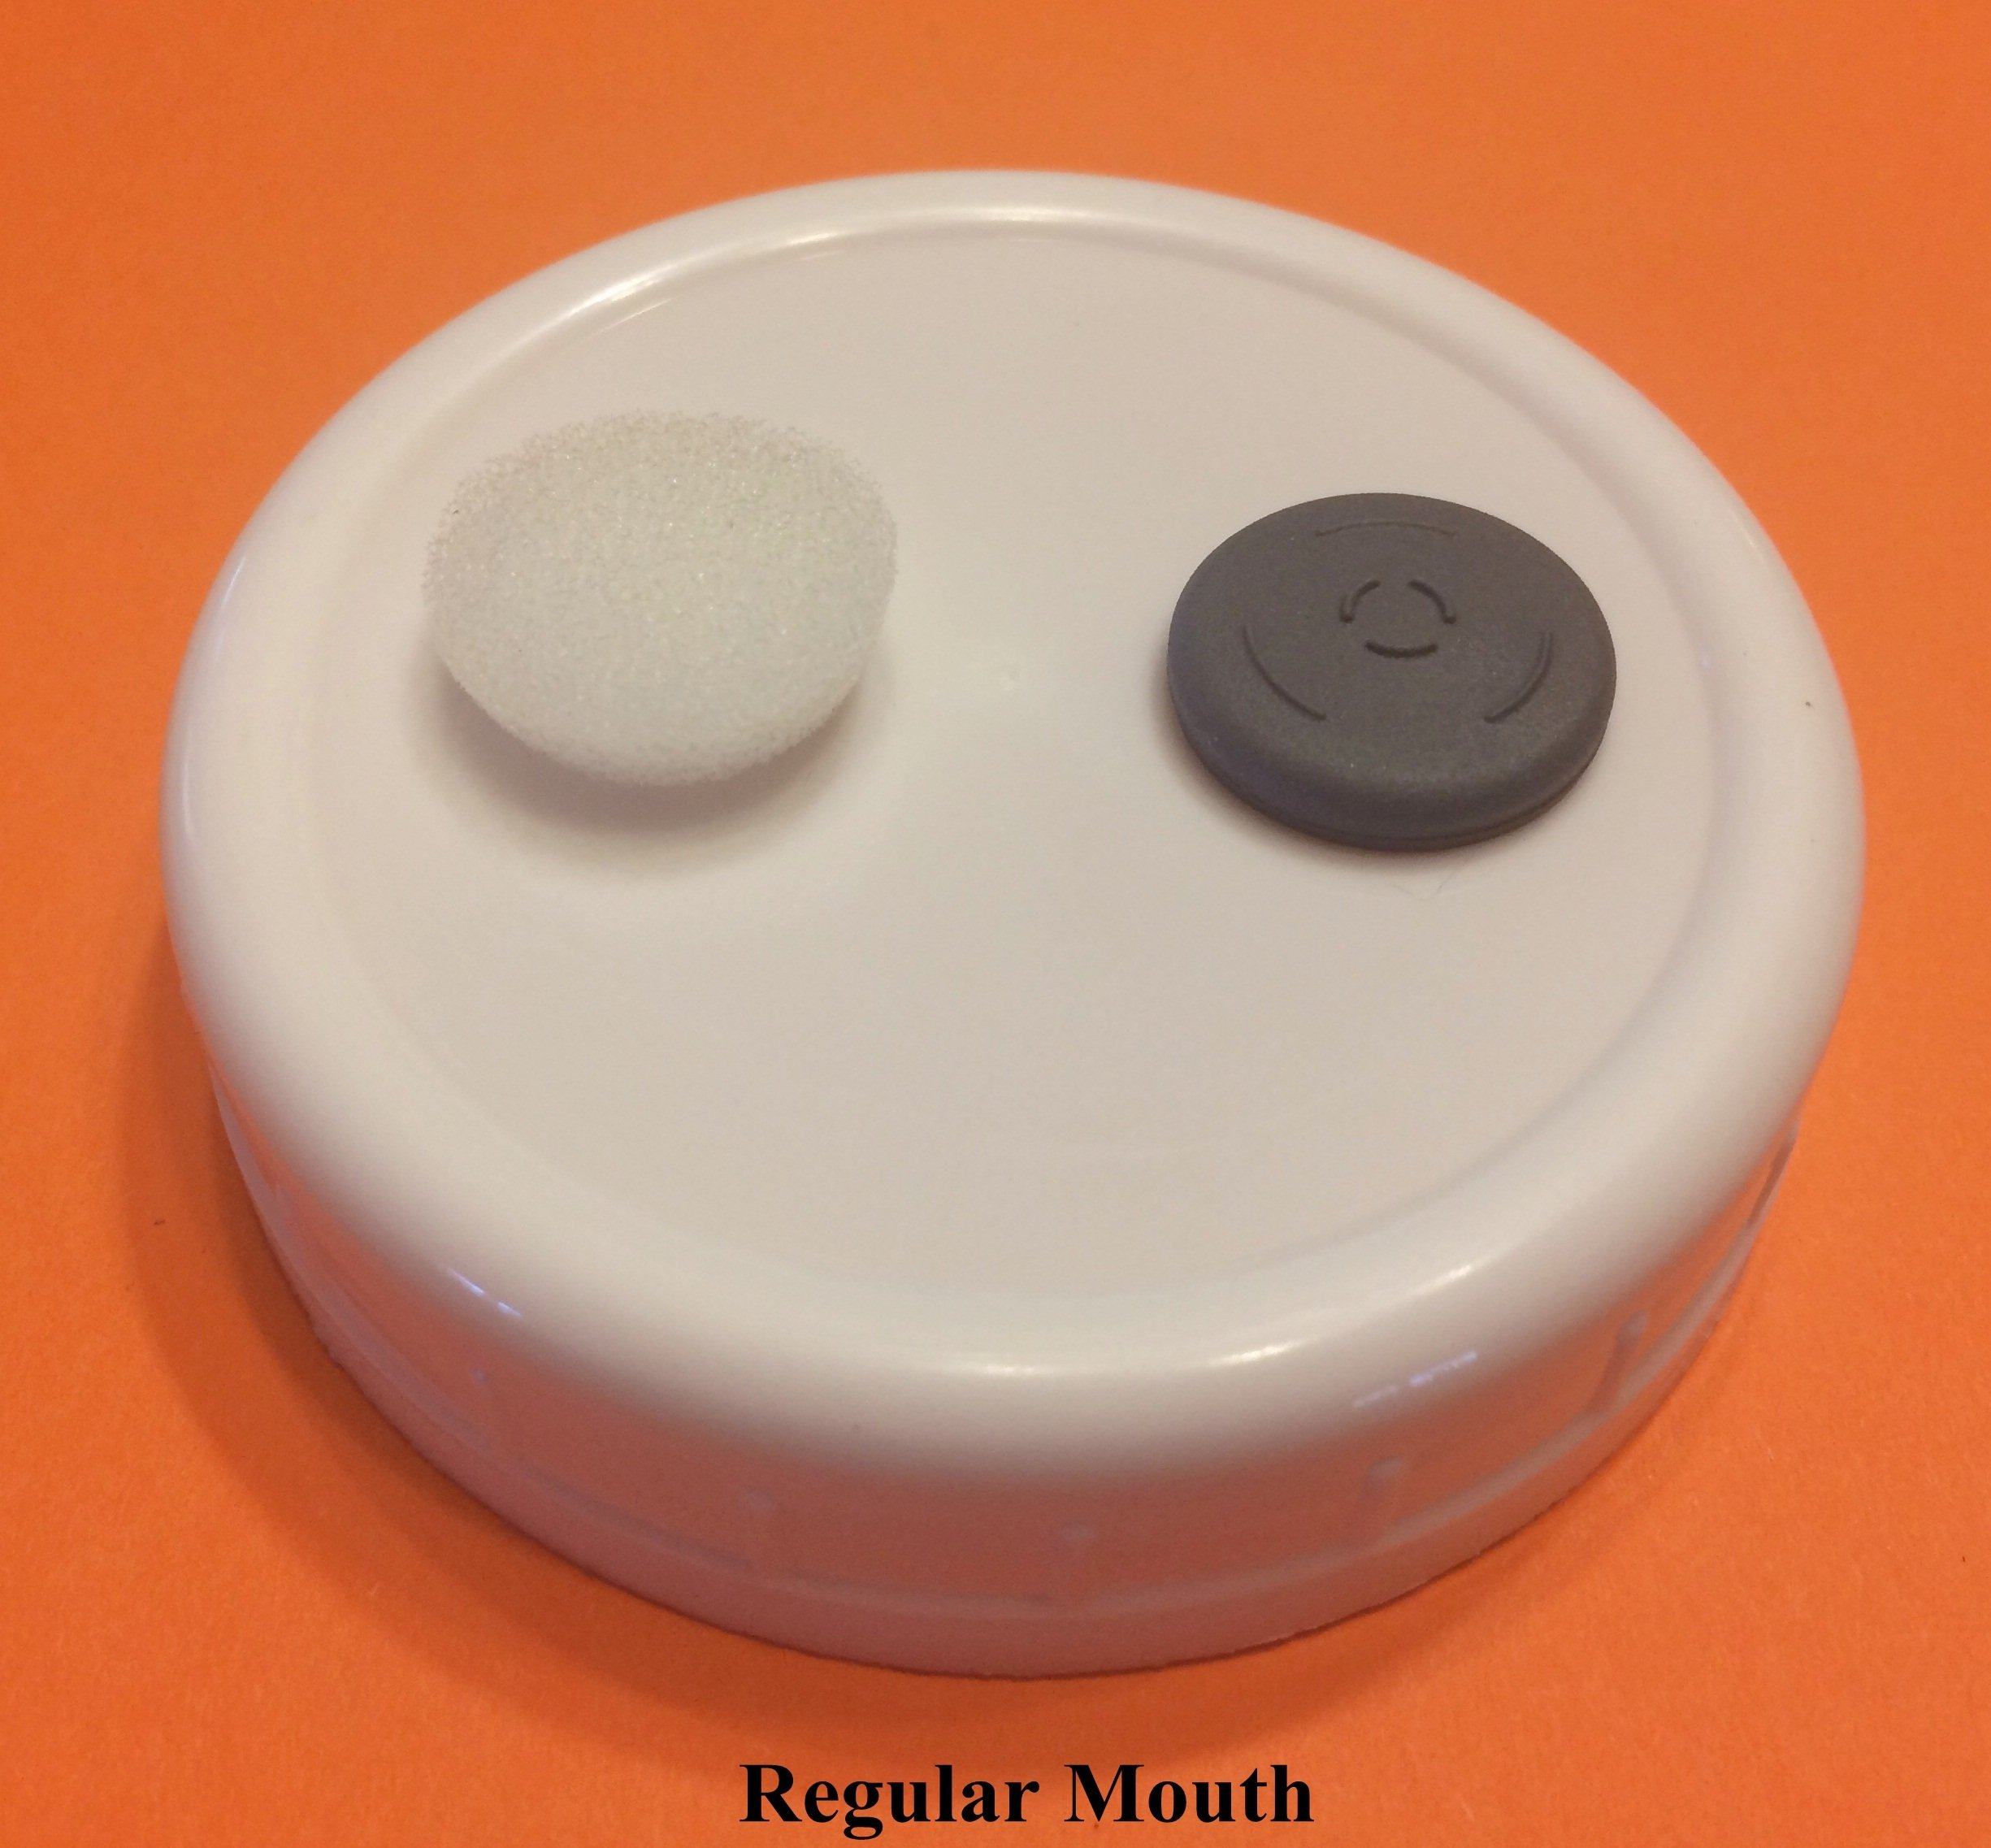 6 Grain Spawn Master Jar Lids Autoclavable Regular Mouth for Mushroom Cultivation Silicone Gasket & 12 Extra Filter Plugs